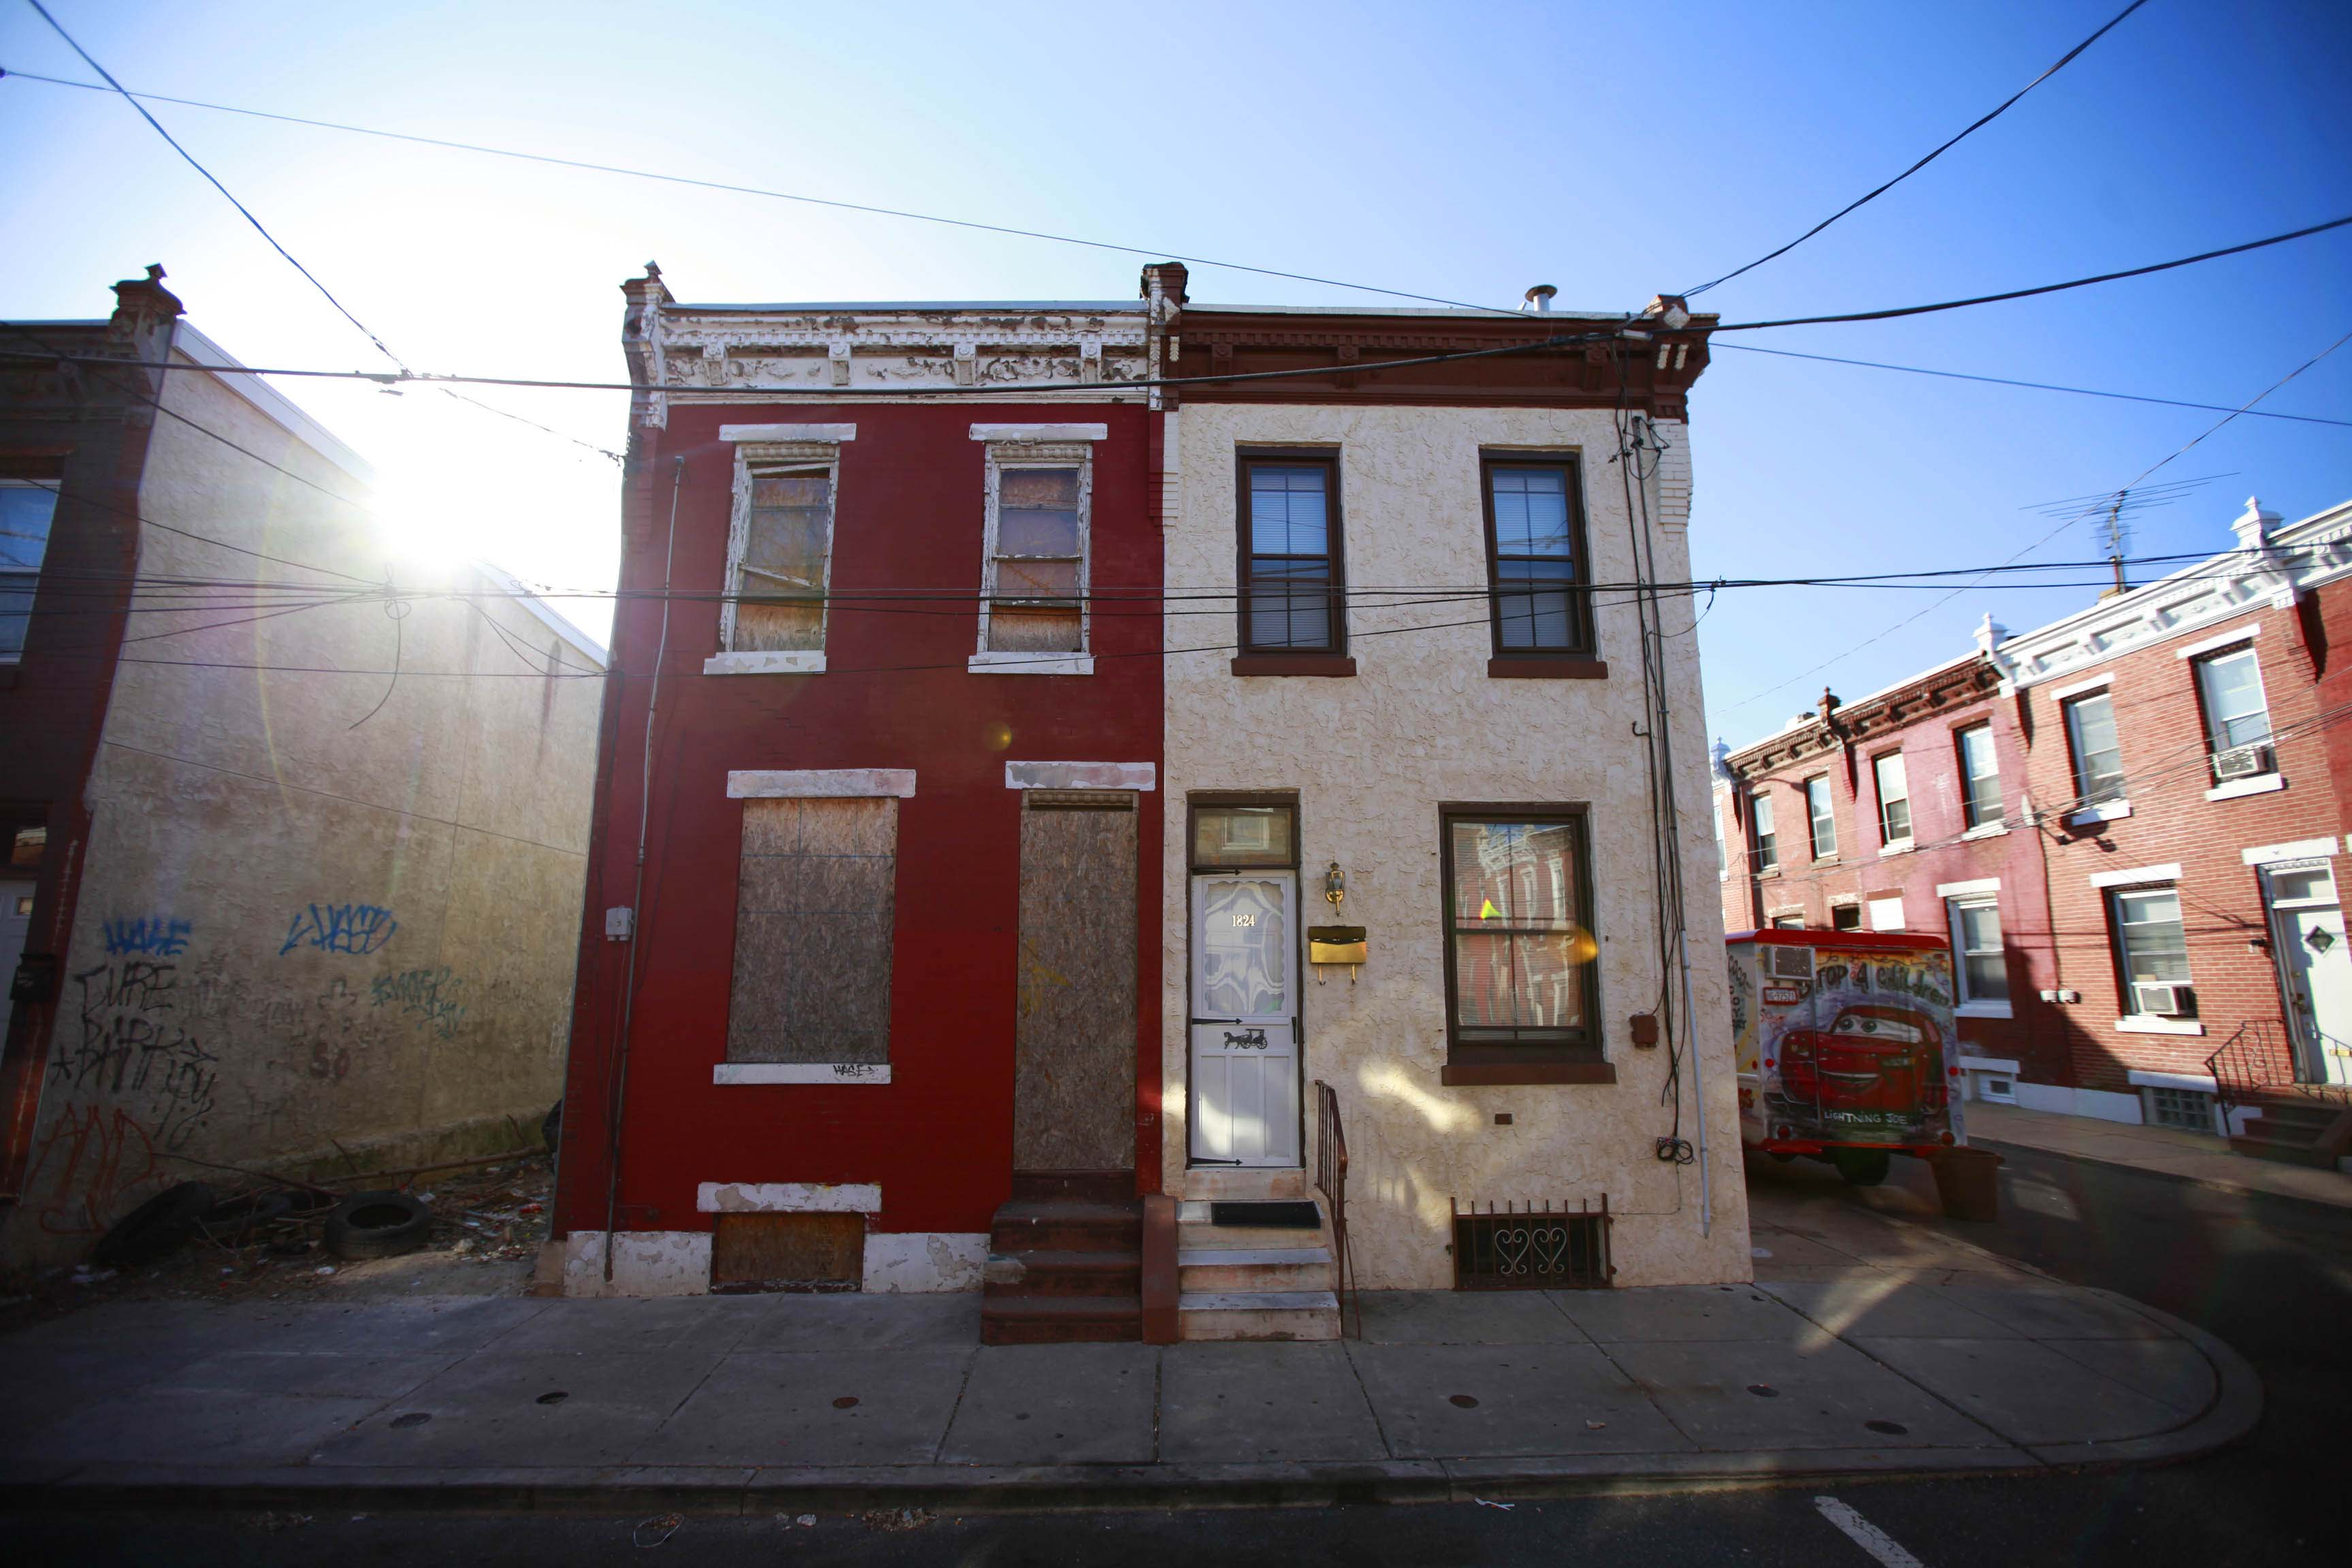 1822 and 1824 Waterloo Street, Philadelphia March 6, 2013. (David Swanson / Inquirer Staff Photographer)